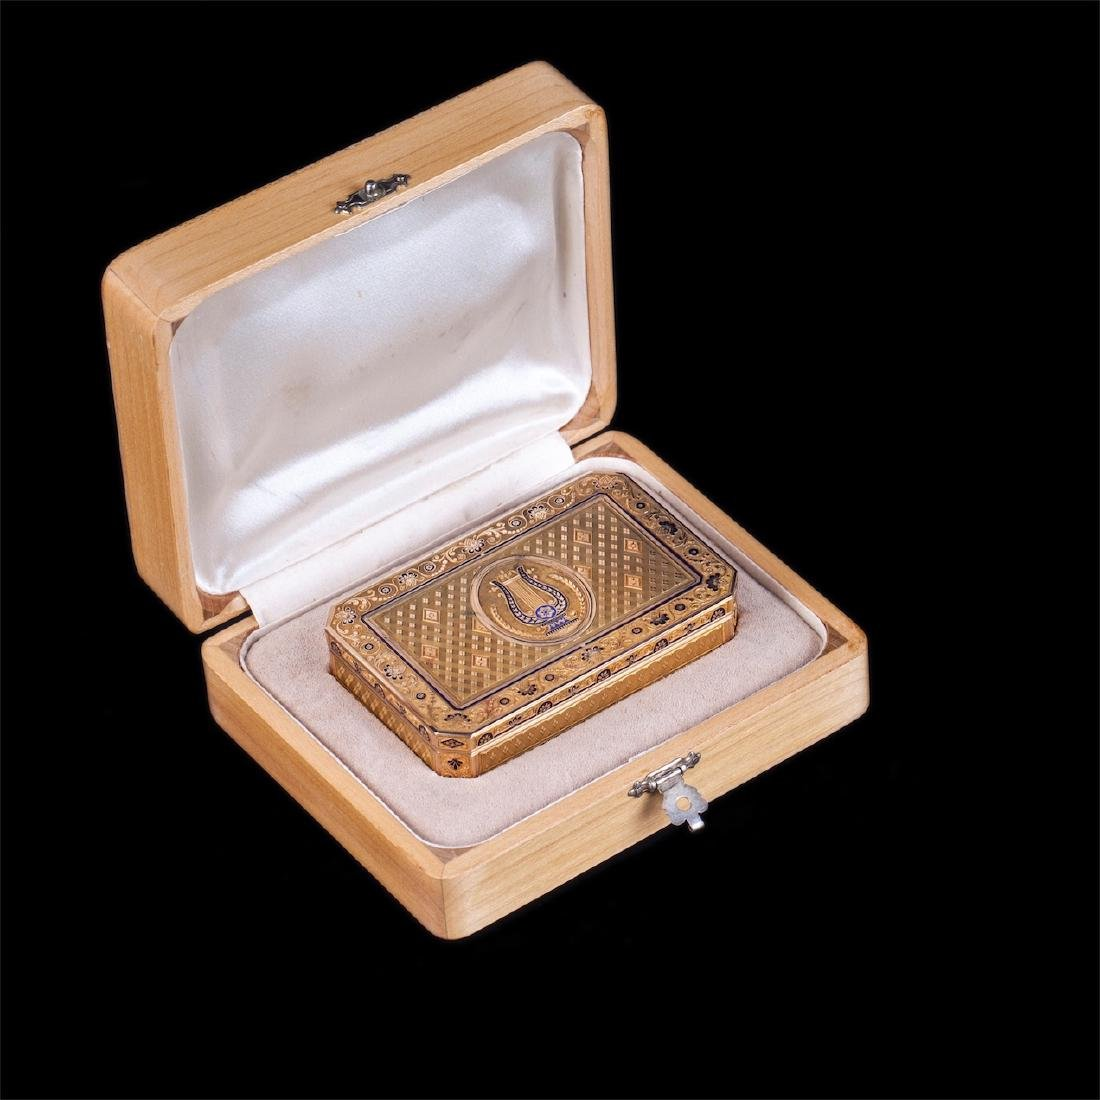 18th century Swiss gold snuff box with harp